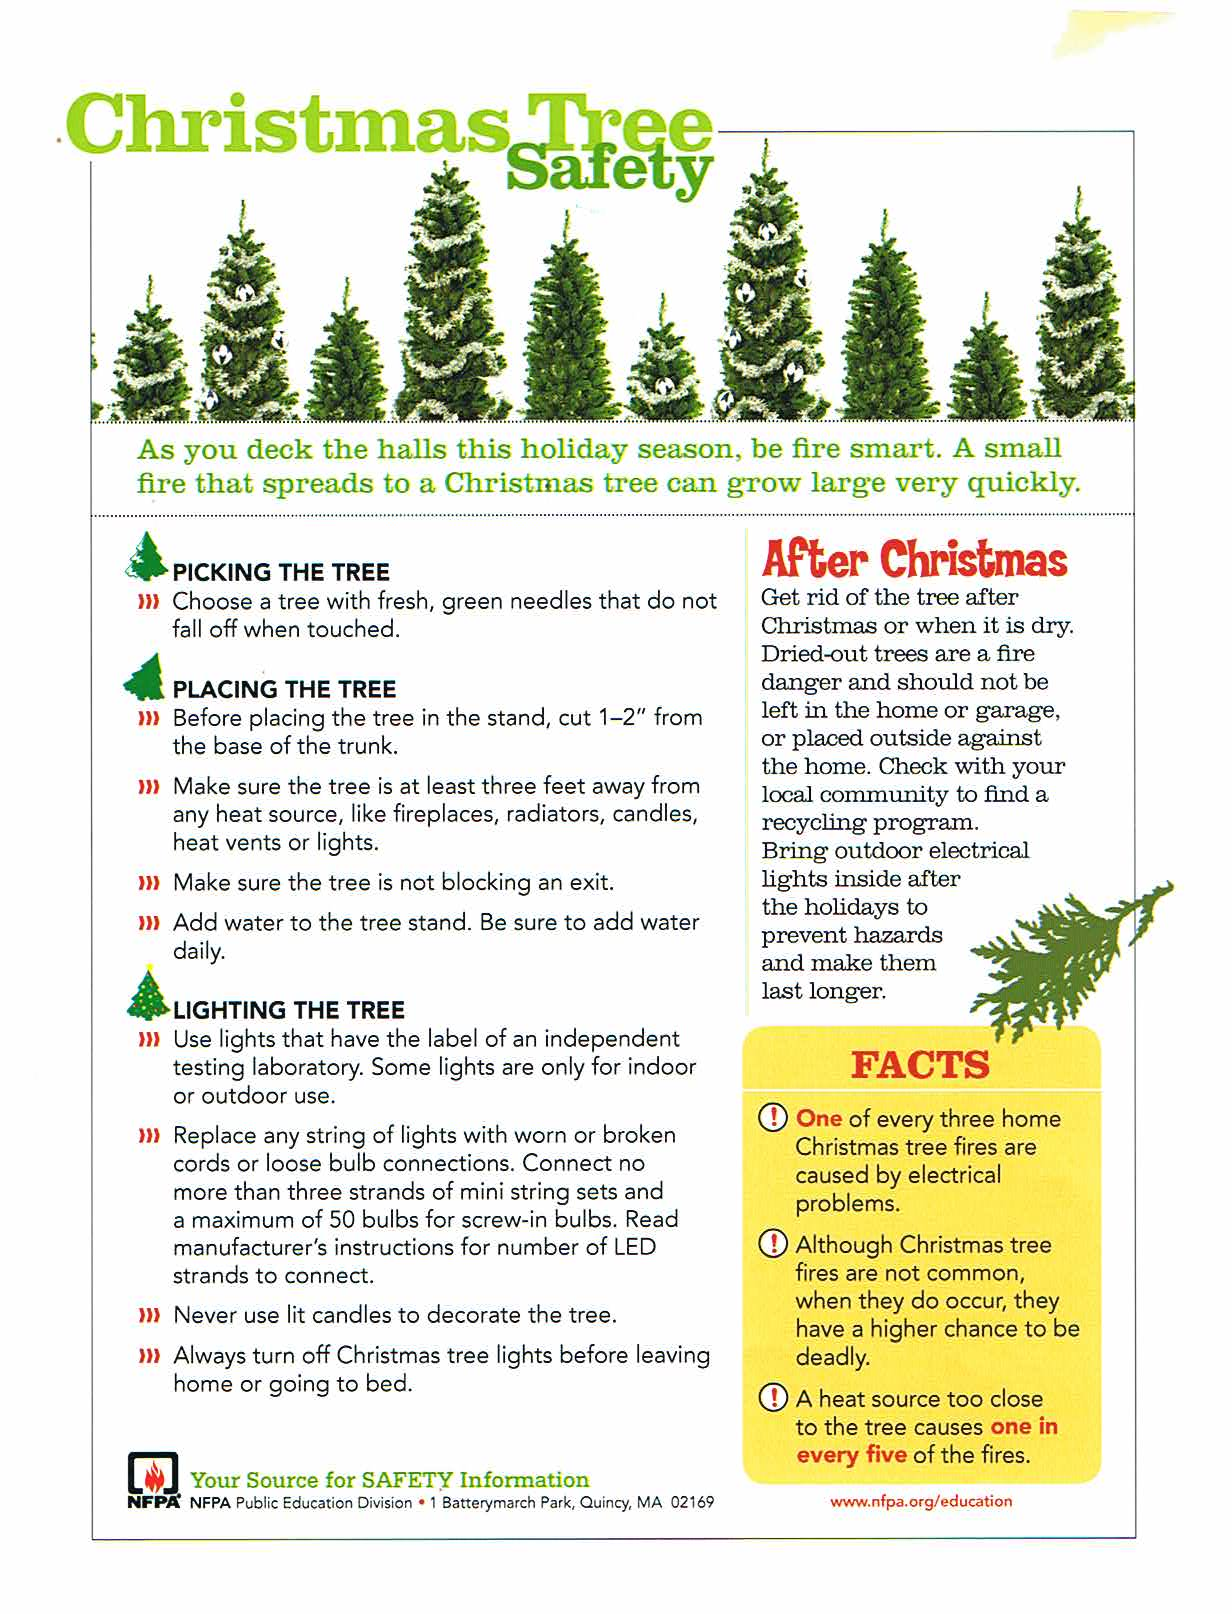 Christmas Tree Safety - Borough of Sayreville